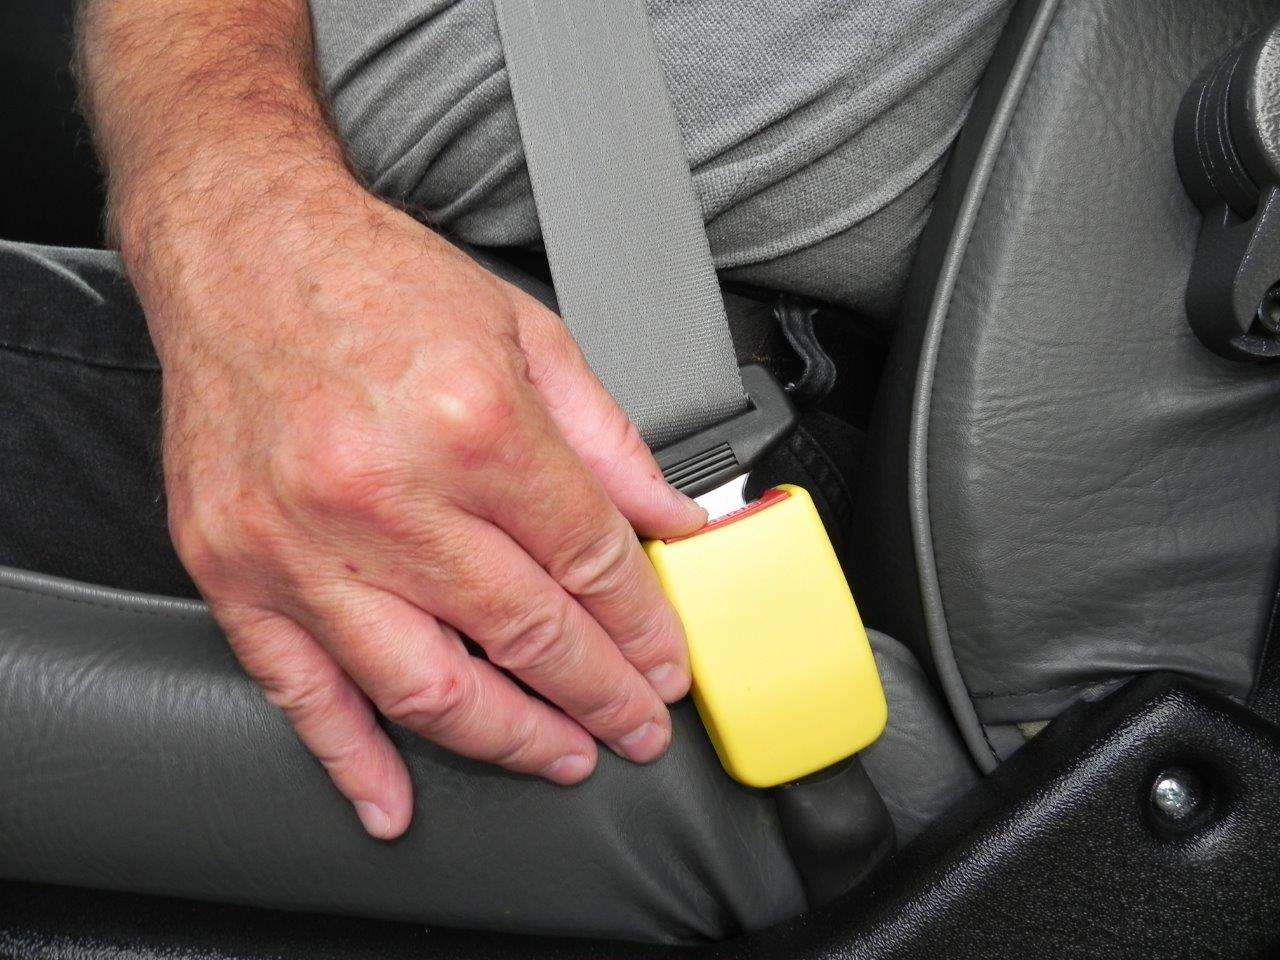 Access Vehicles Australia specialise in Handicap Vans, Disability Buses, Wheelchair Access Vehicle Conversions | STAY-PUT Seat Belt Buckle System - ../../dc/products/STAY-PUT_1_1.jpg